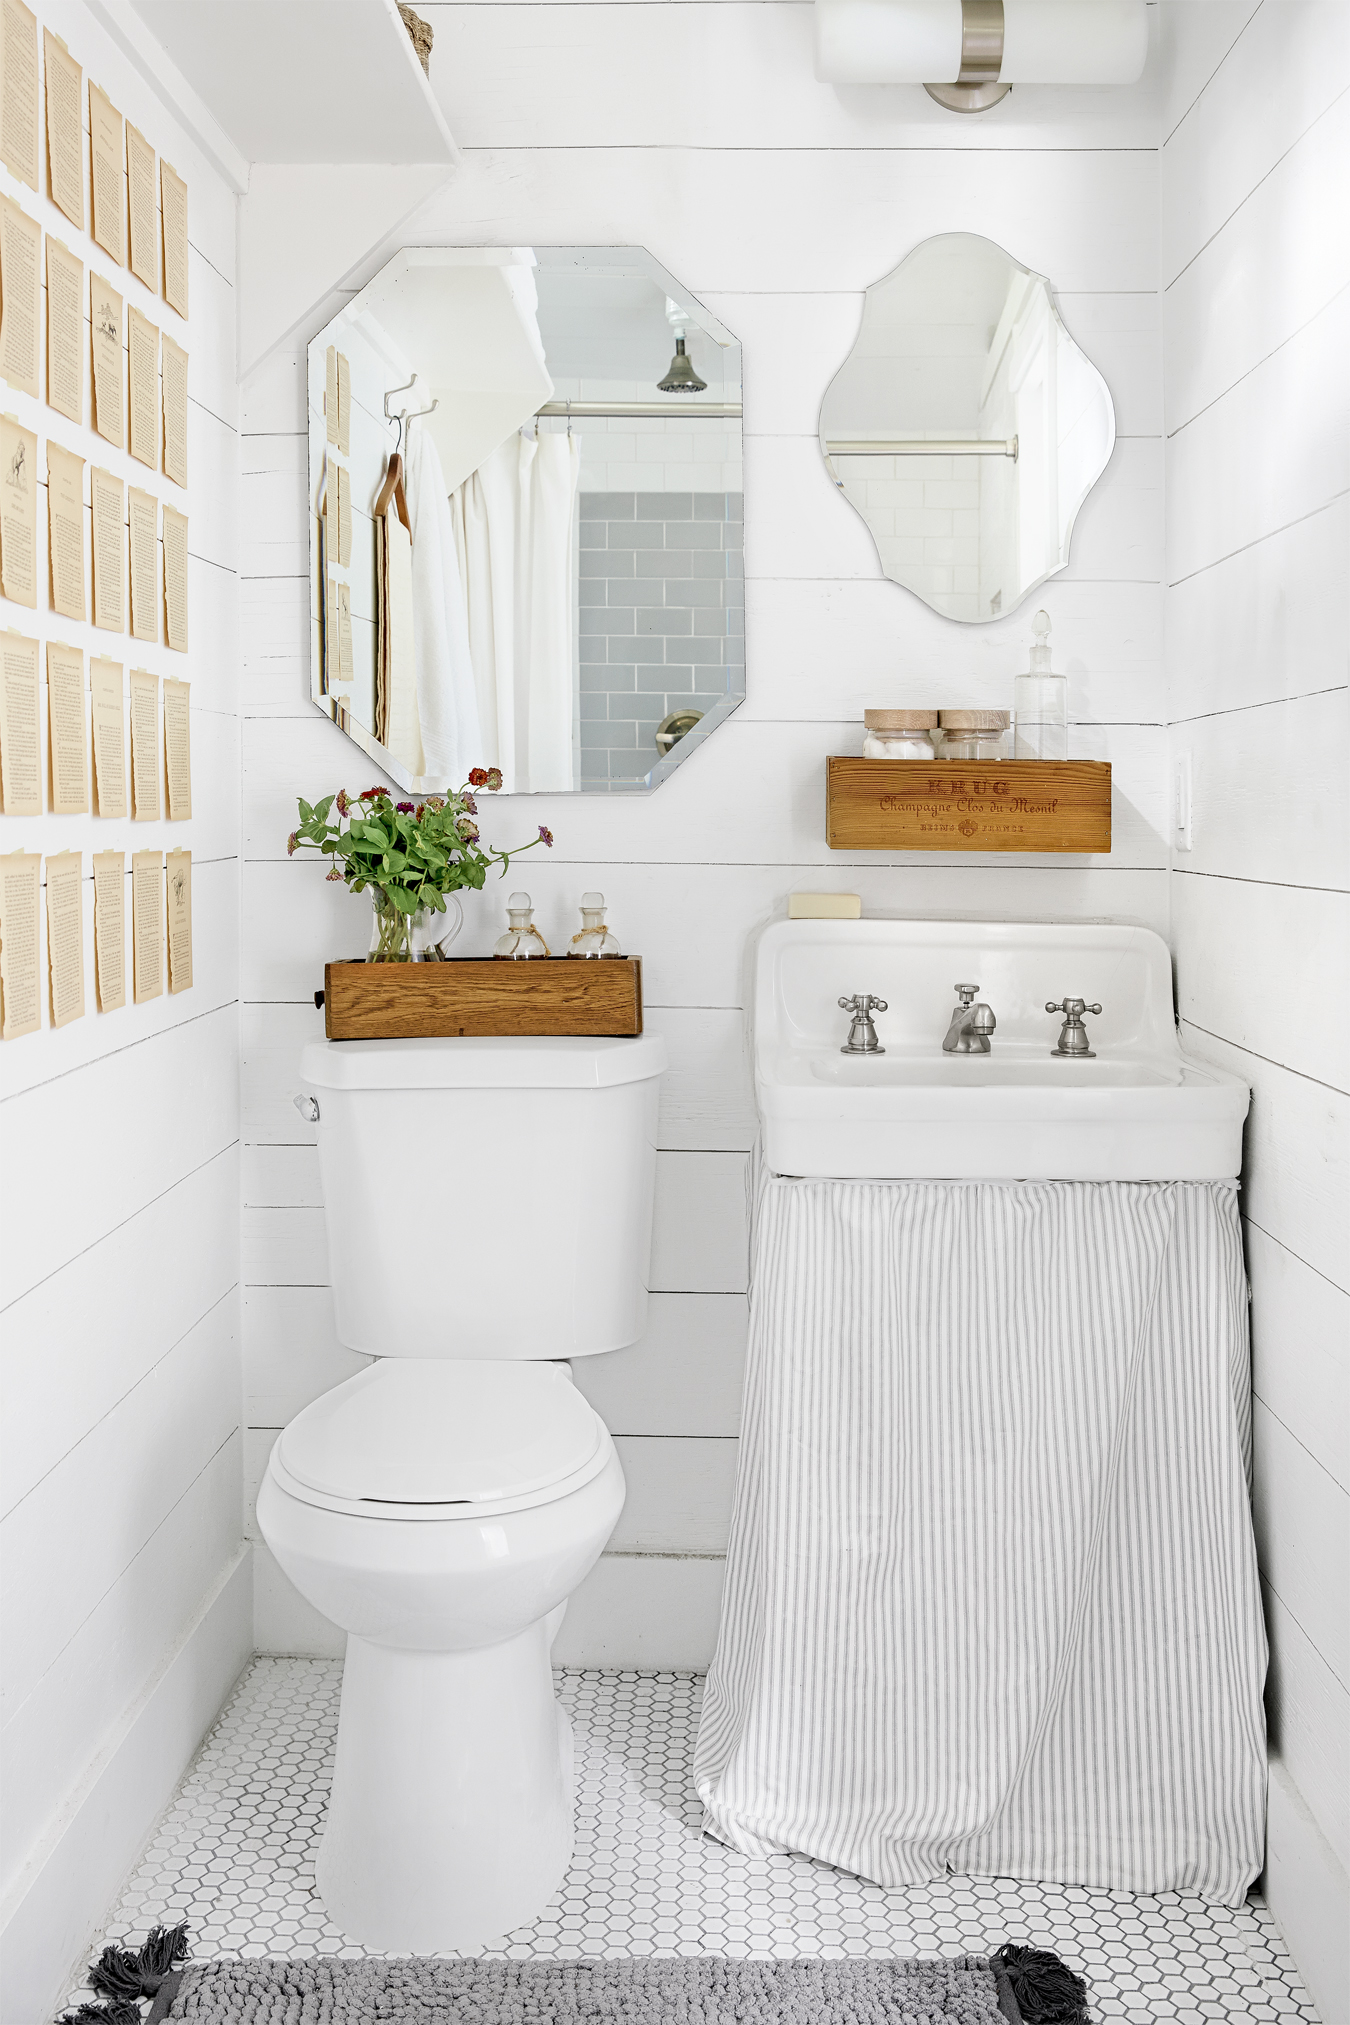 27 white bathroom ideas decorating with white for bathrooms - White bathroom ideas photo gallery ...